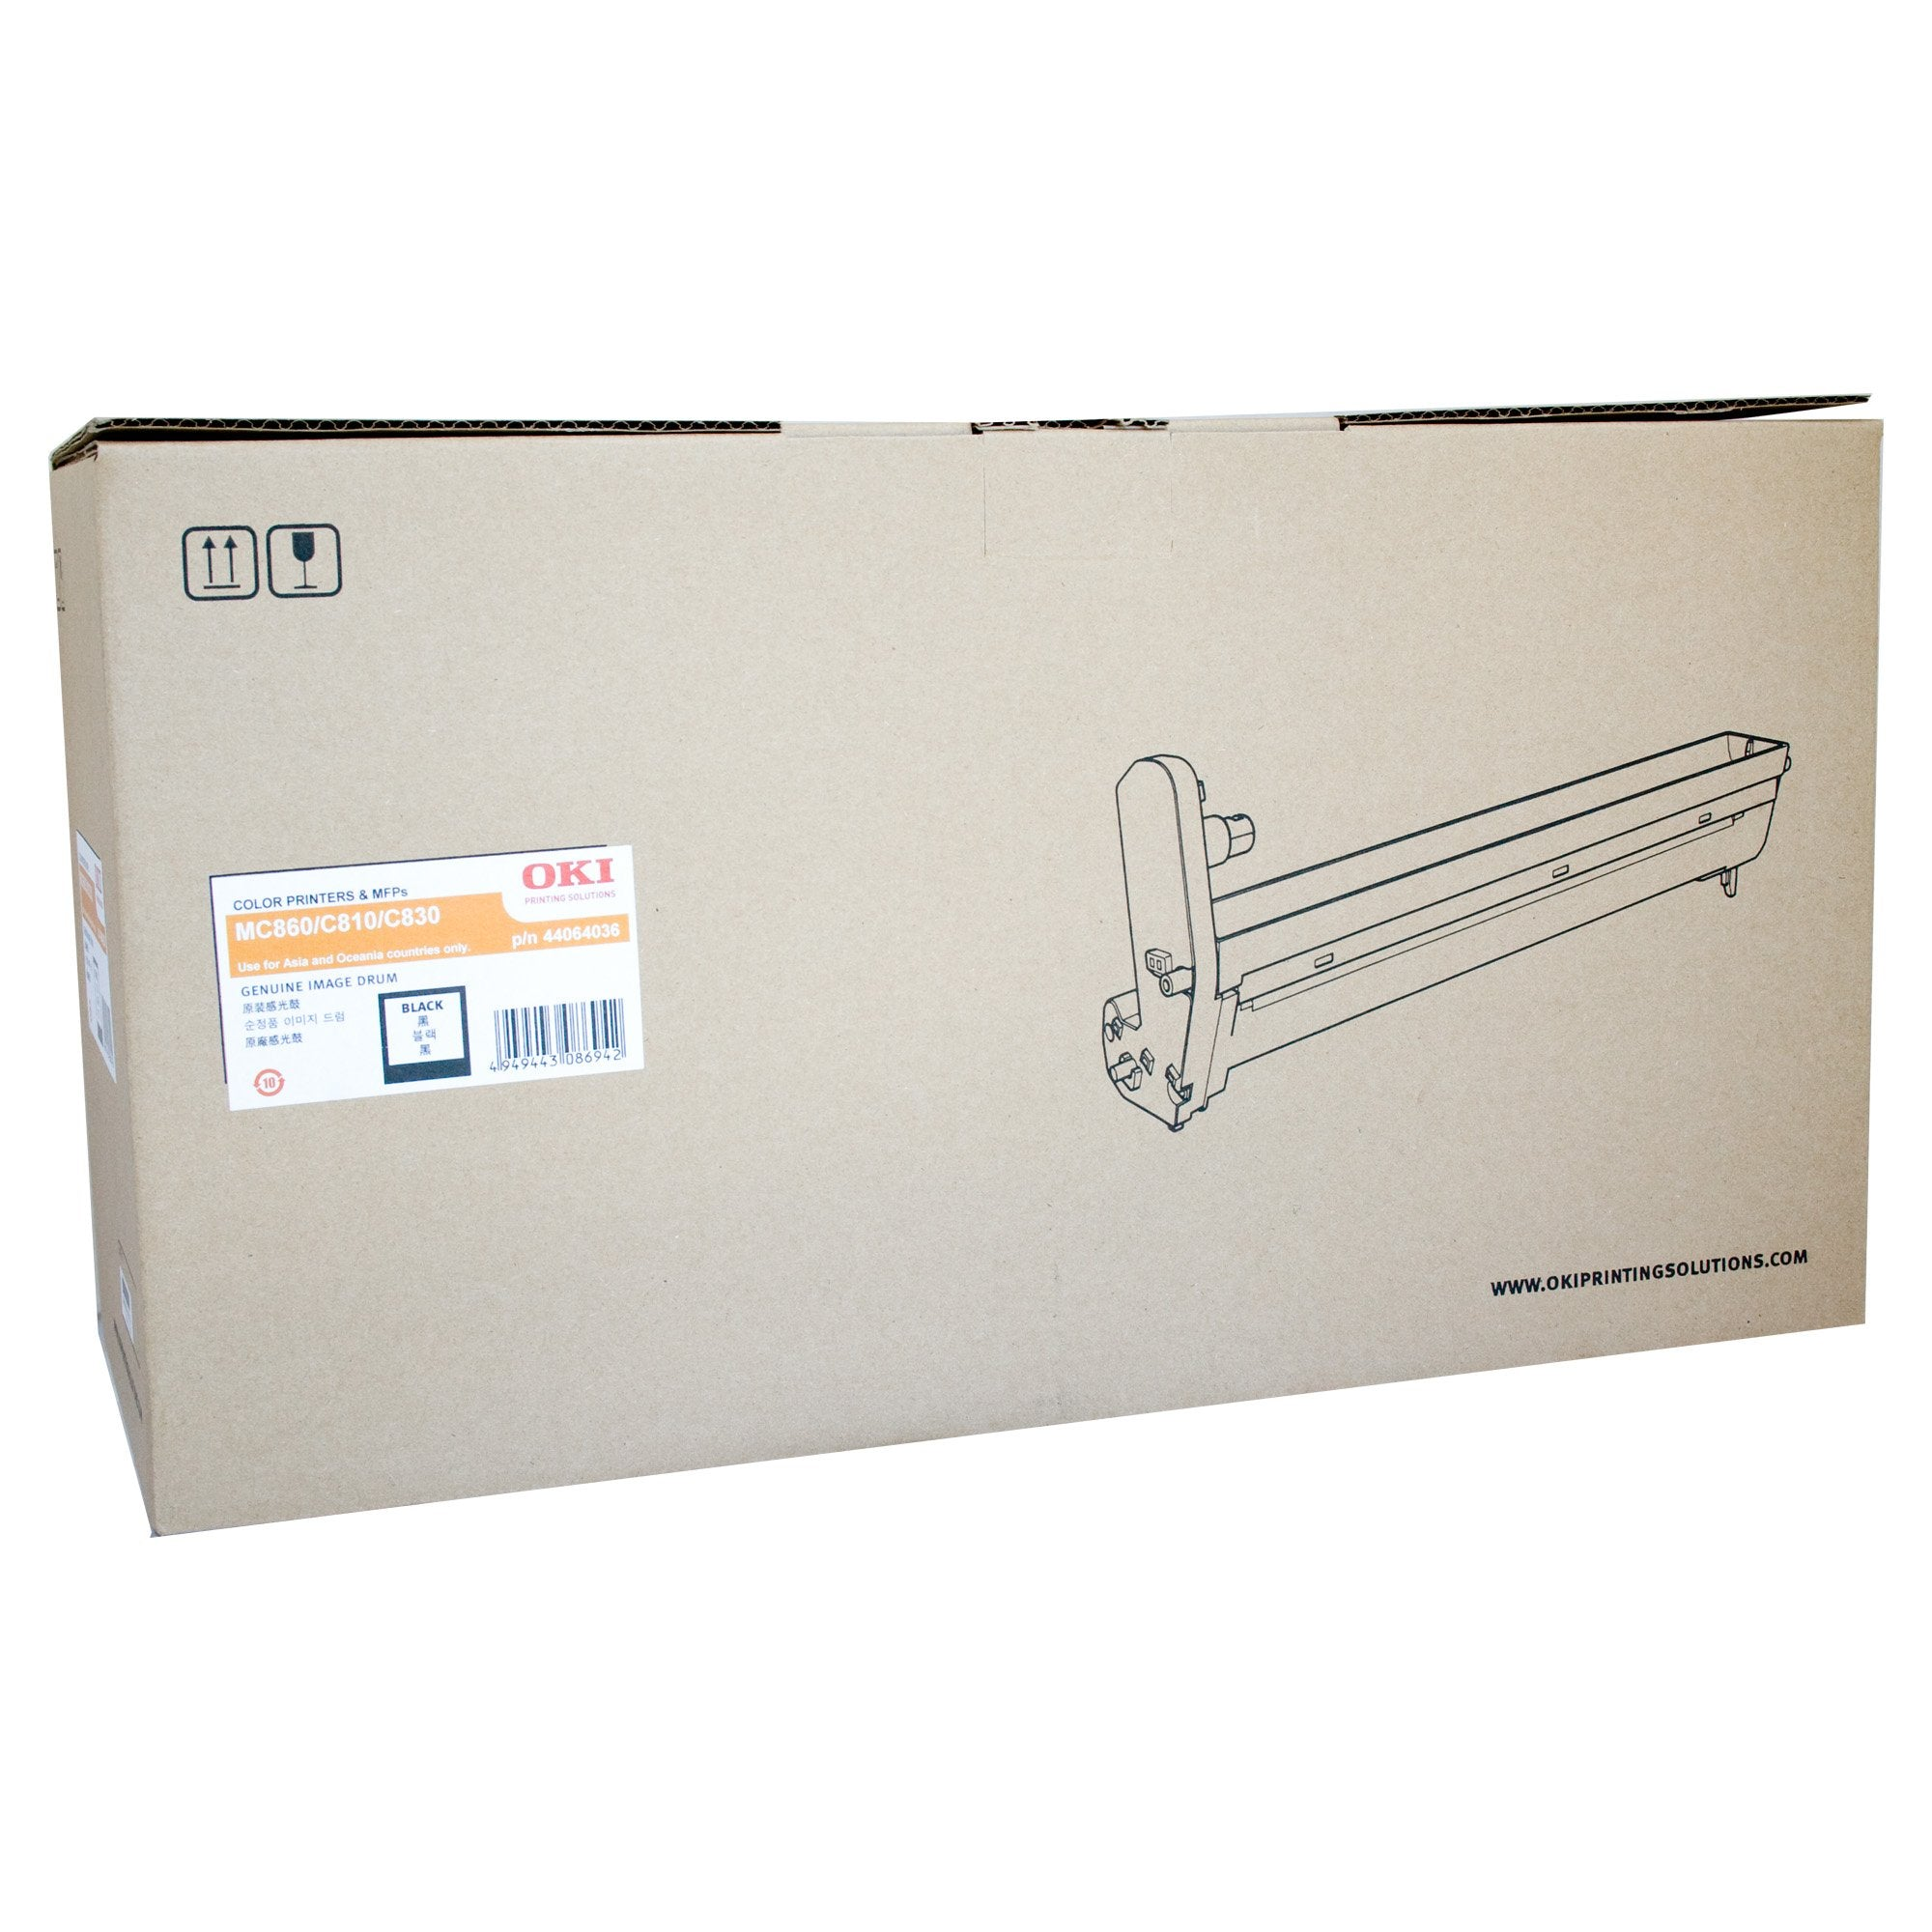 OKI 44064036 Drum Unit